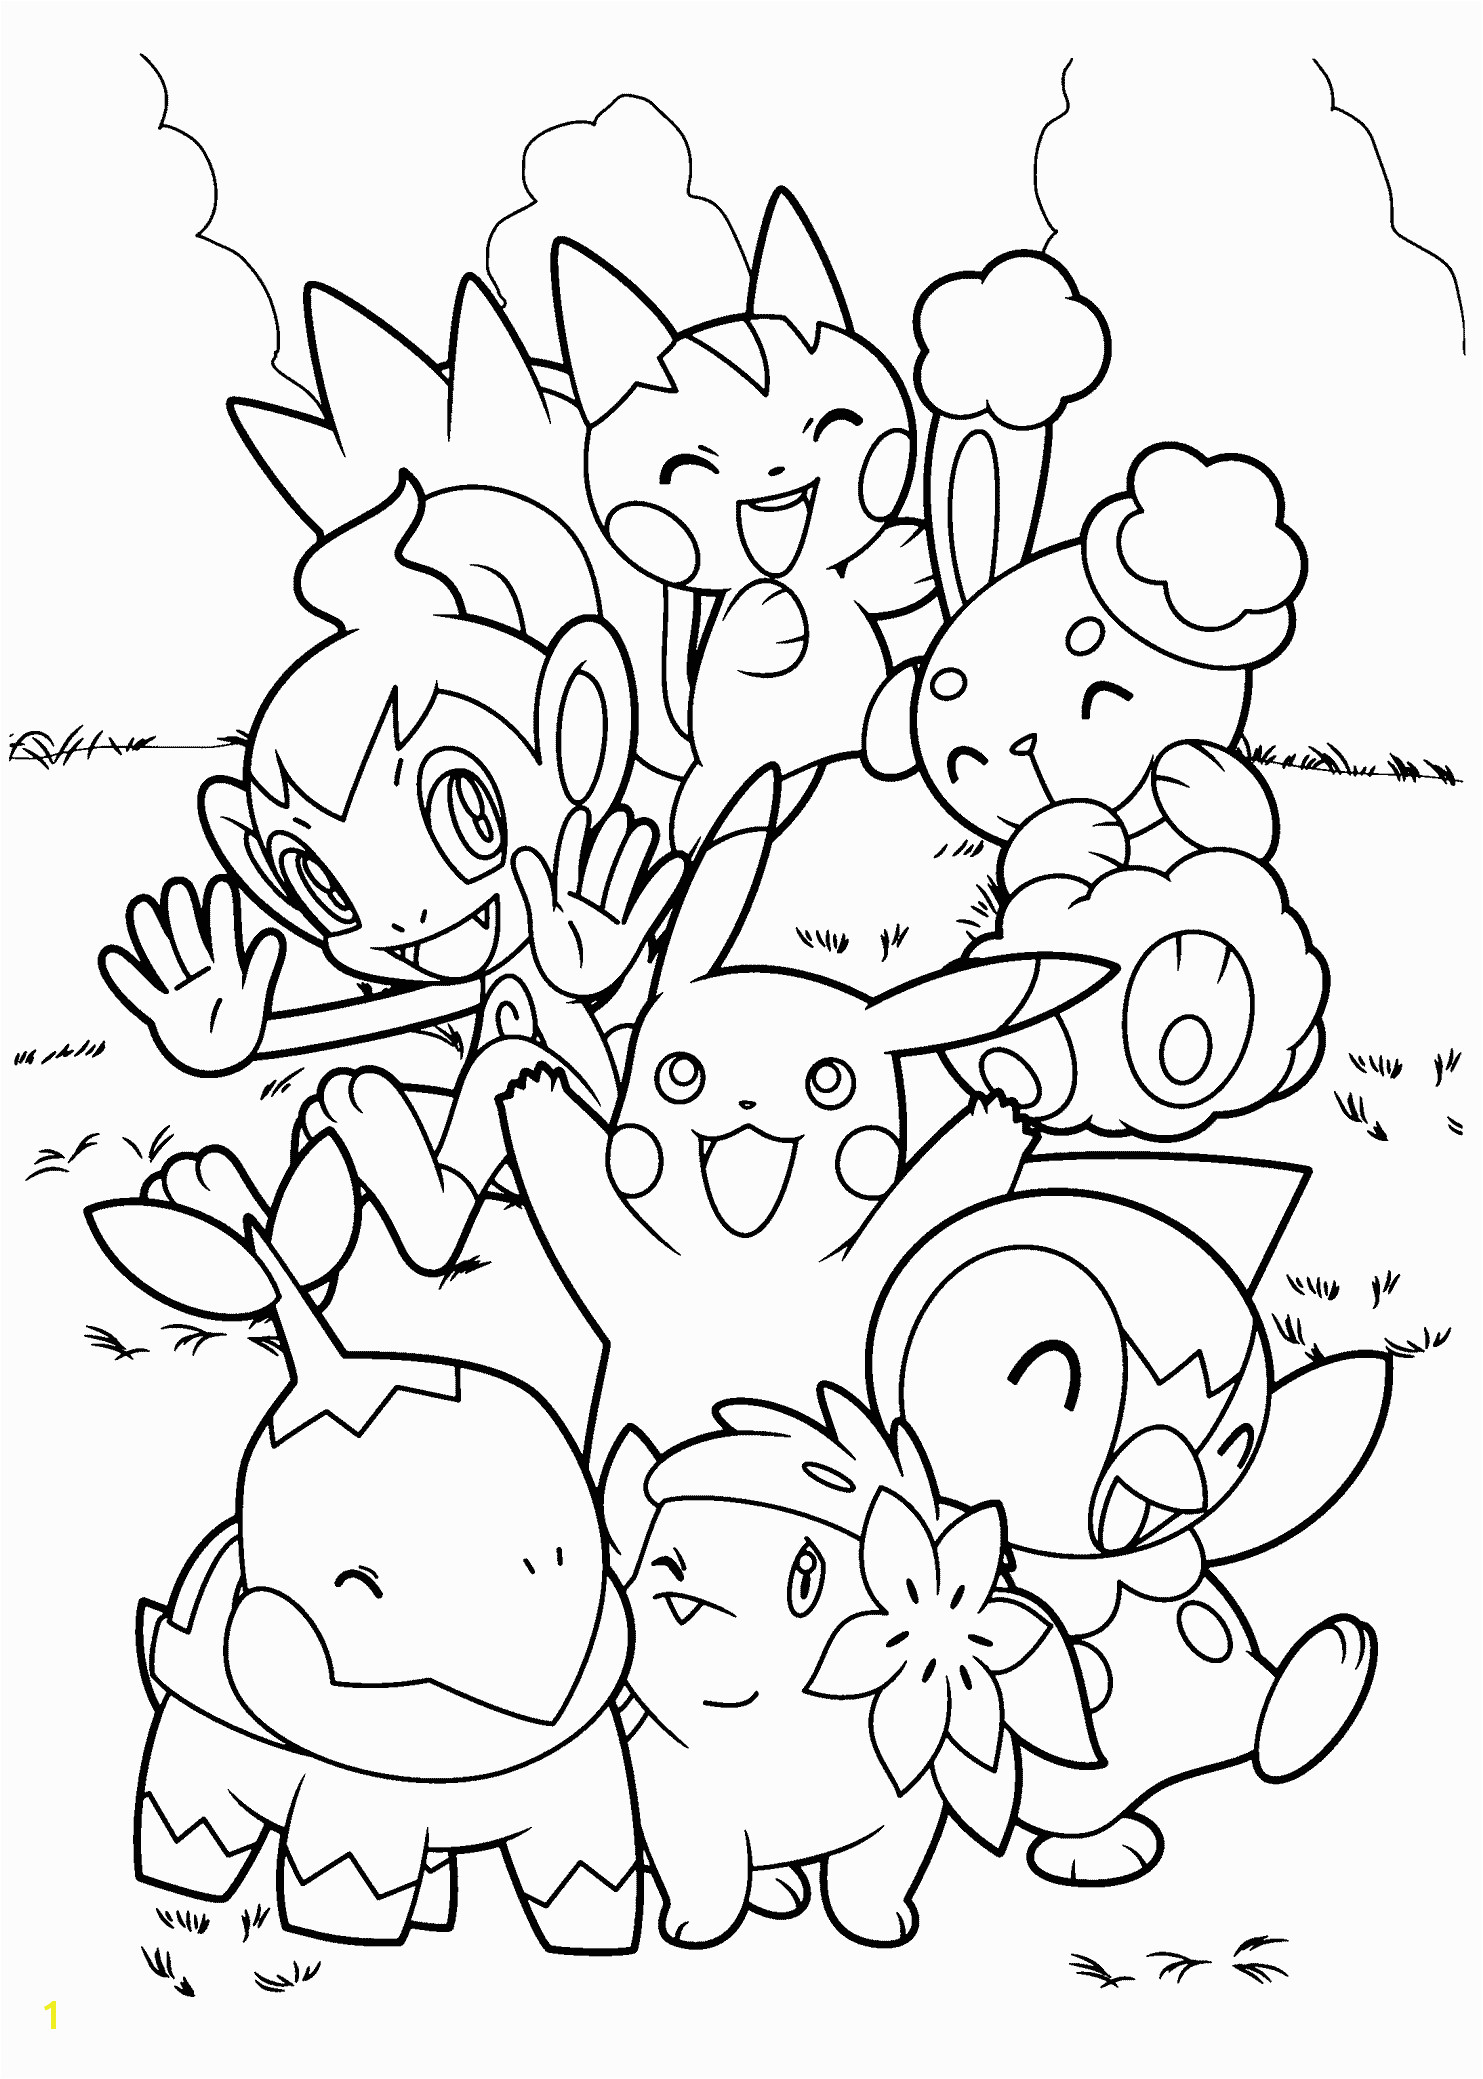 Pokemon Coloring Pages Printable Pdf top 90 Free Printable Pokemon Coloring Pages Line